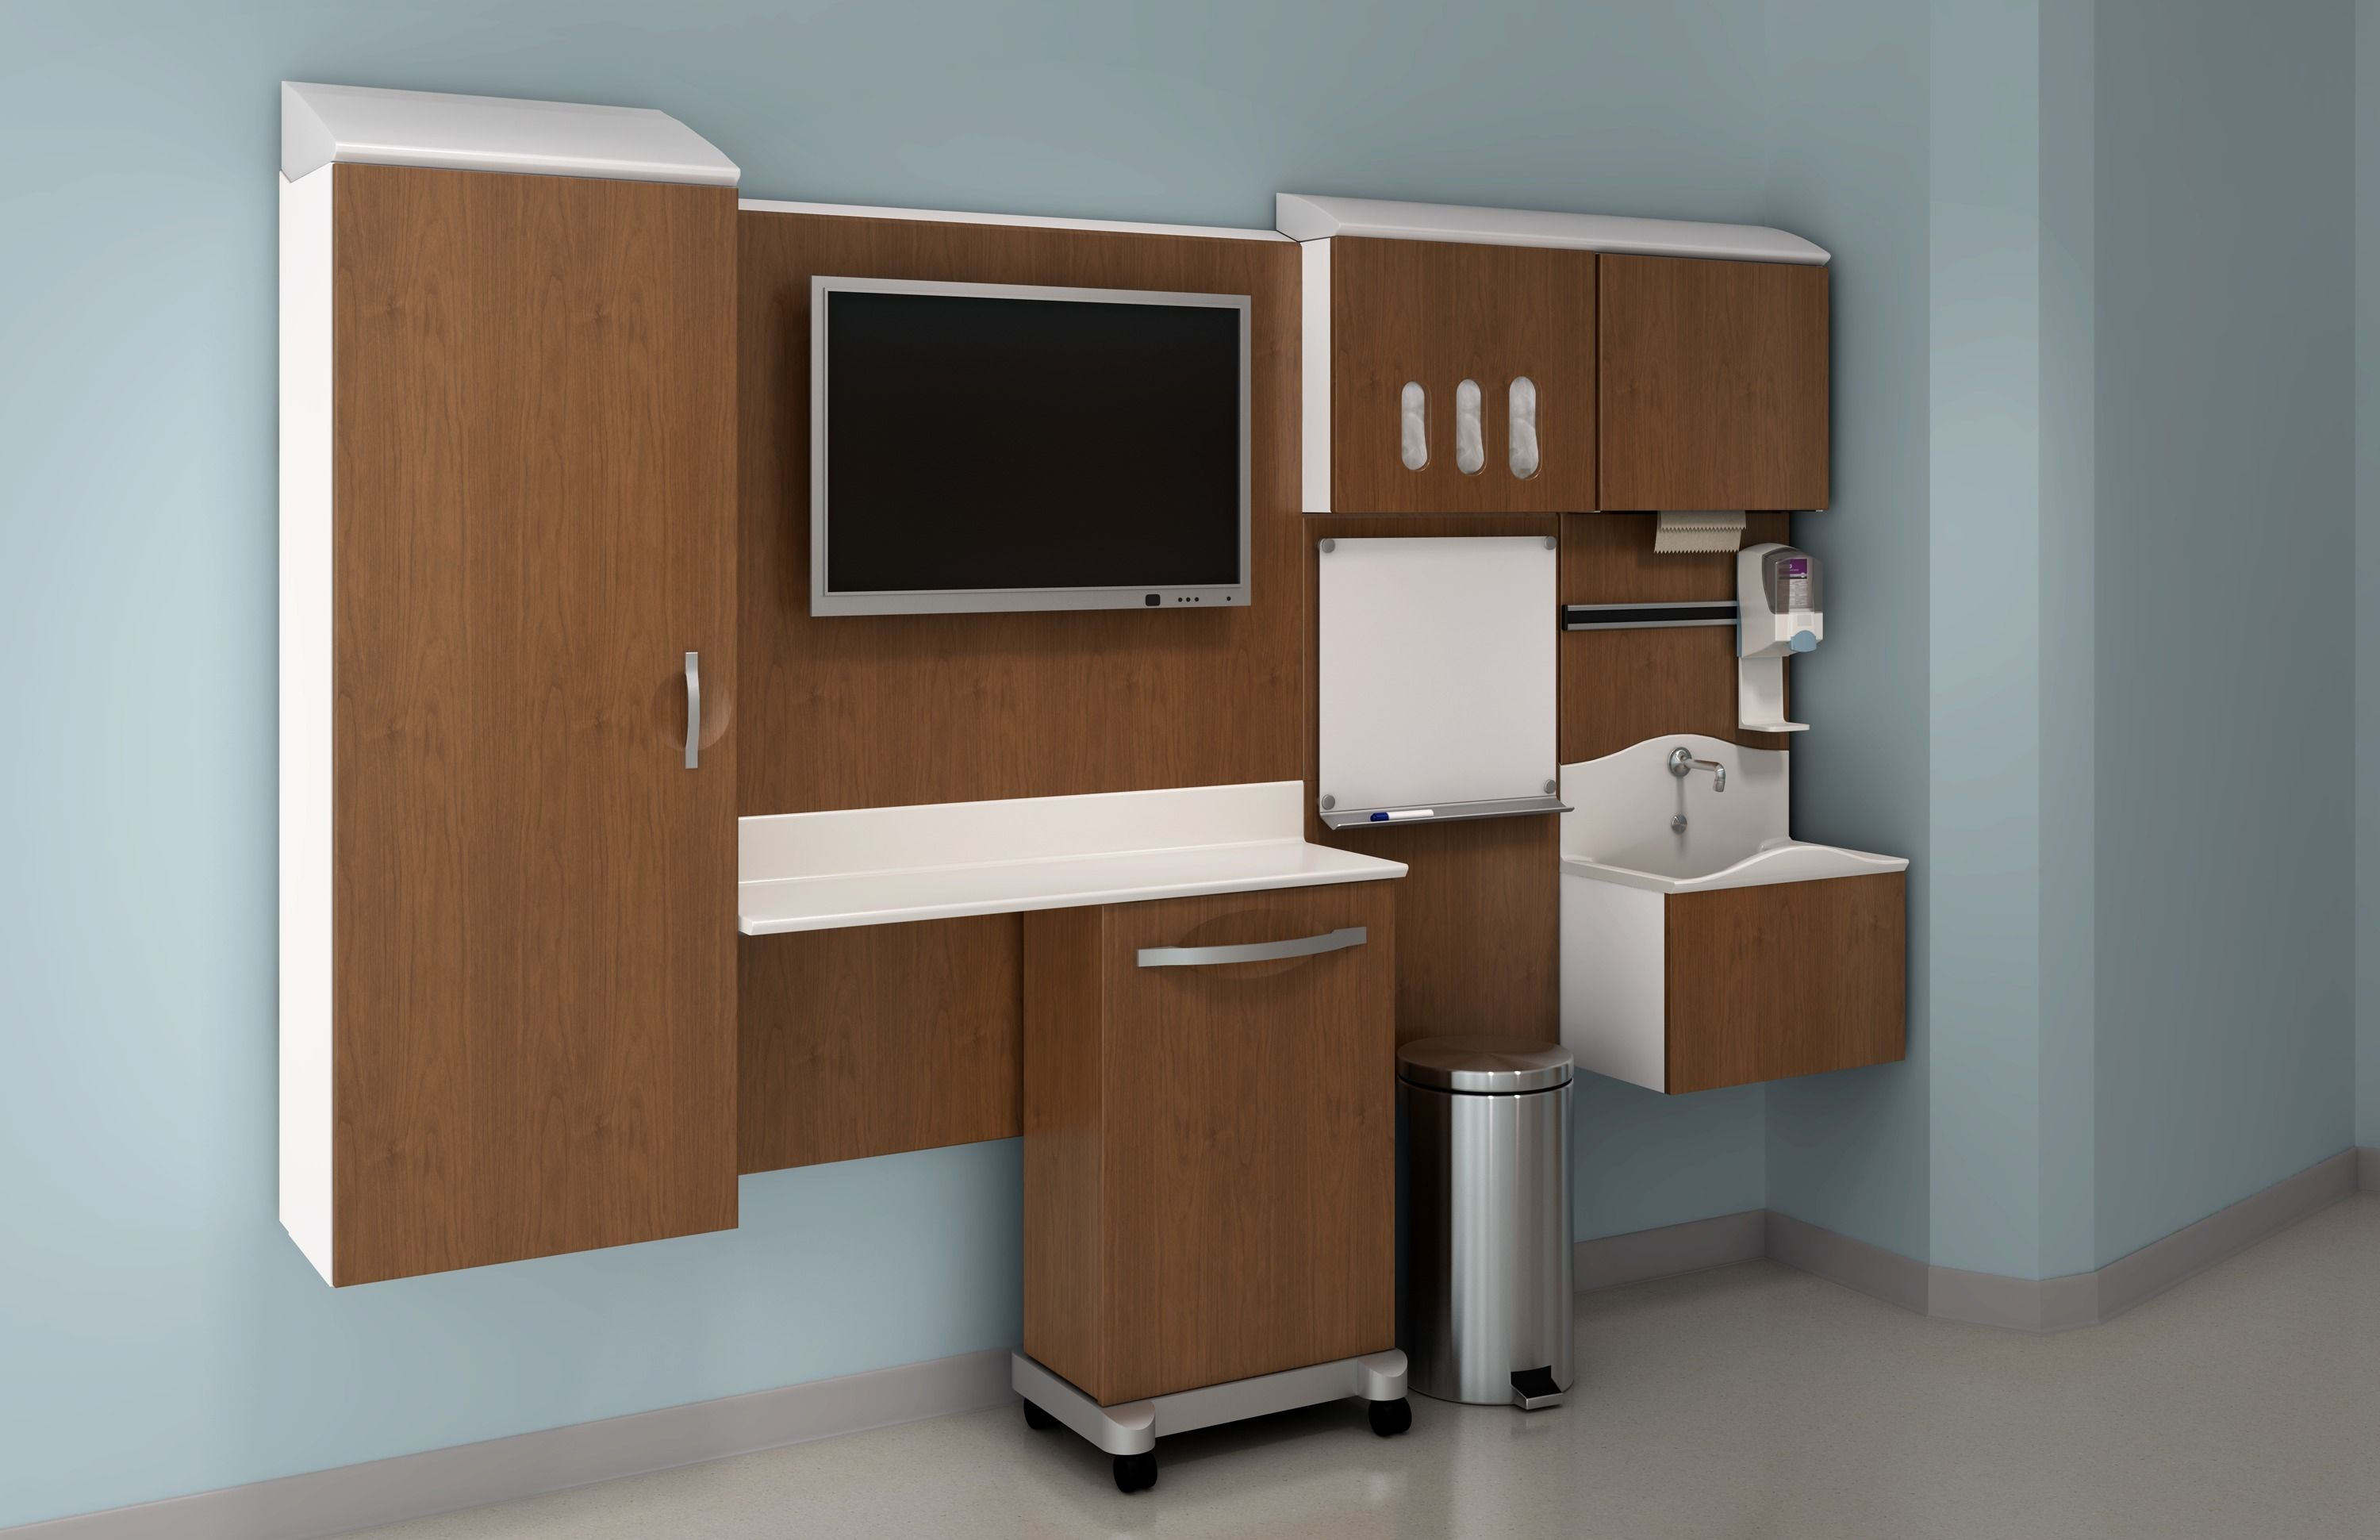 pass healthcare furniture systems are used to create applications for patient rooms exam rooms caregiver work areas and other clinical spaces